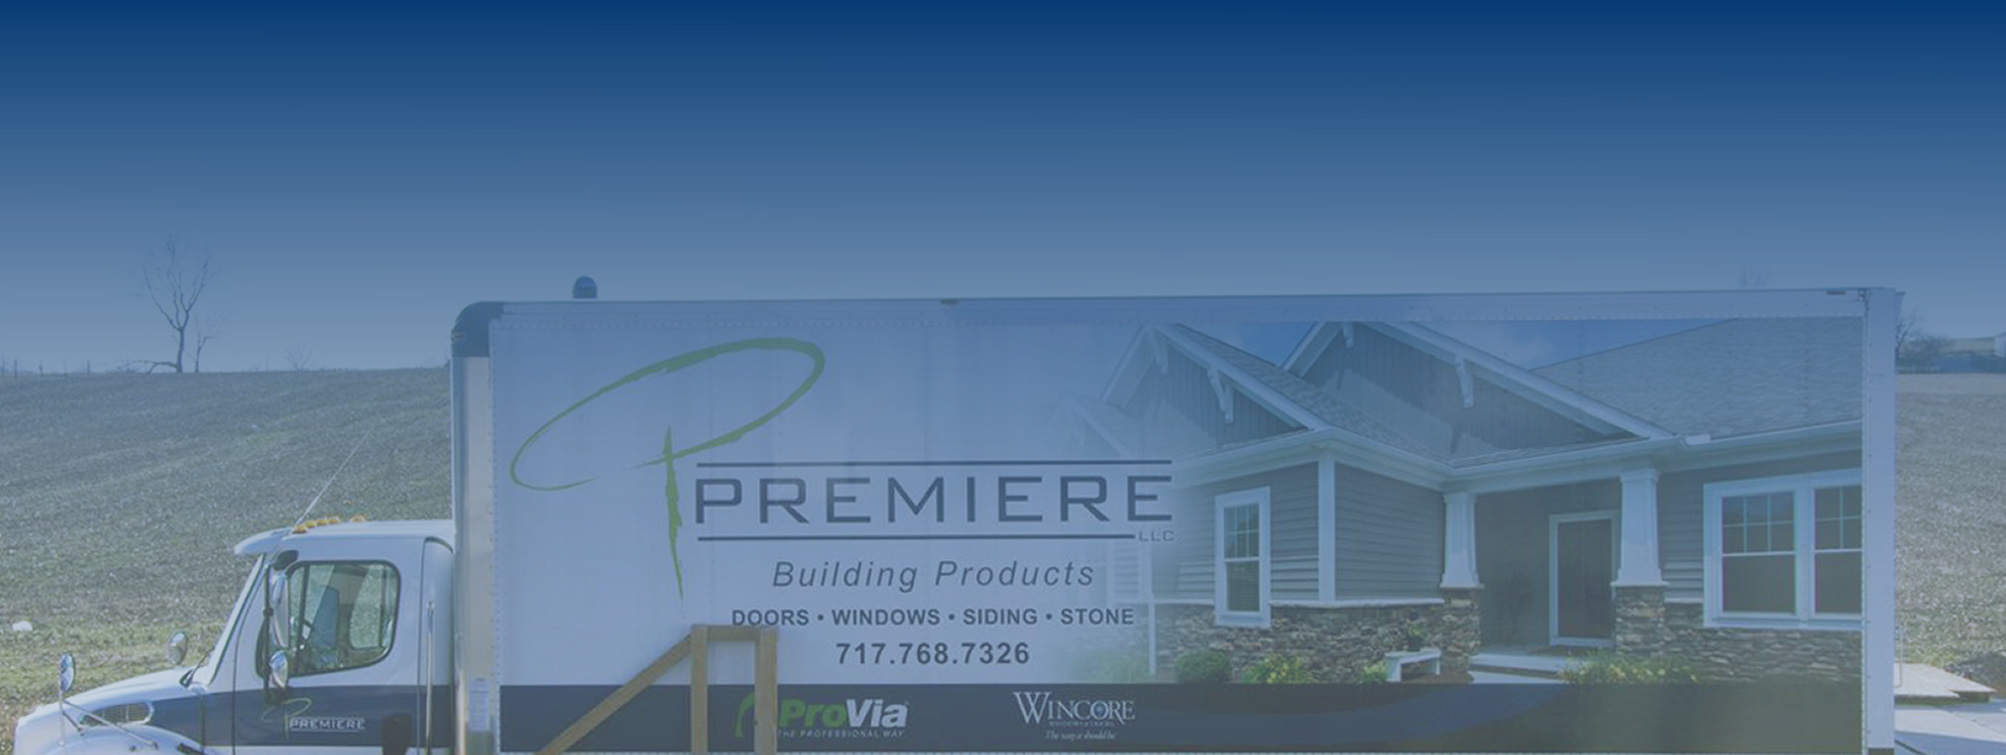 Premier LLC Delivers Building Supplies with Speed and Efficiency